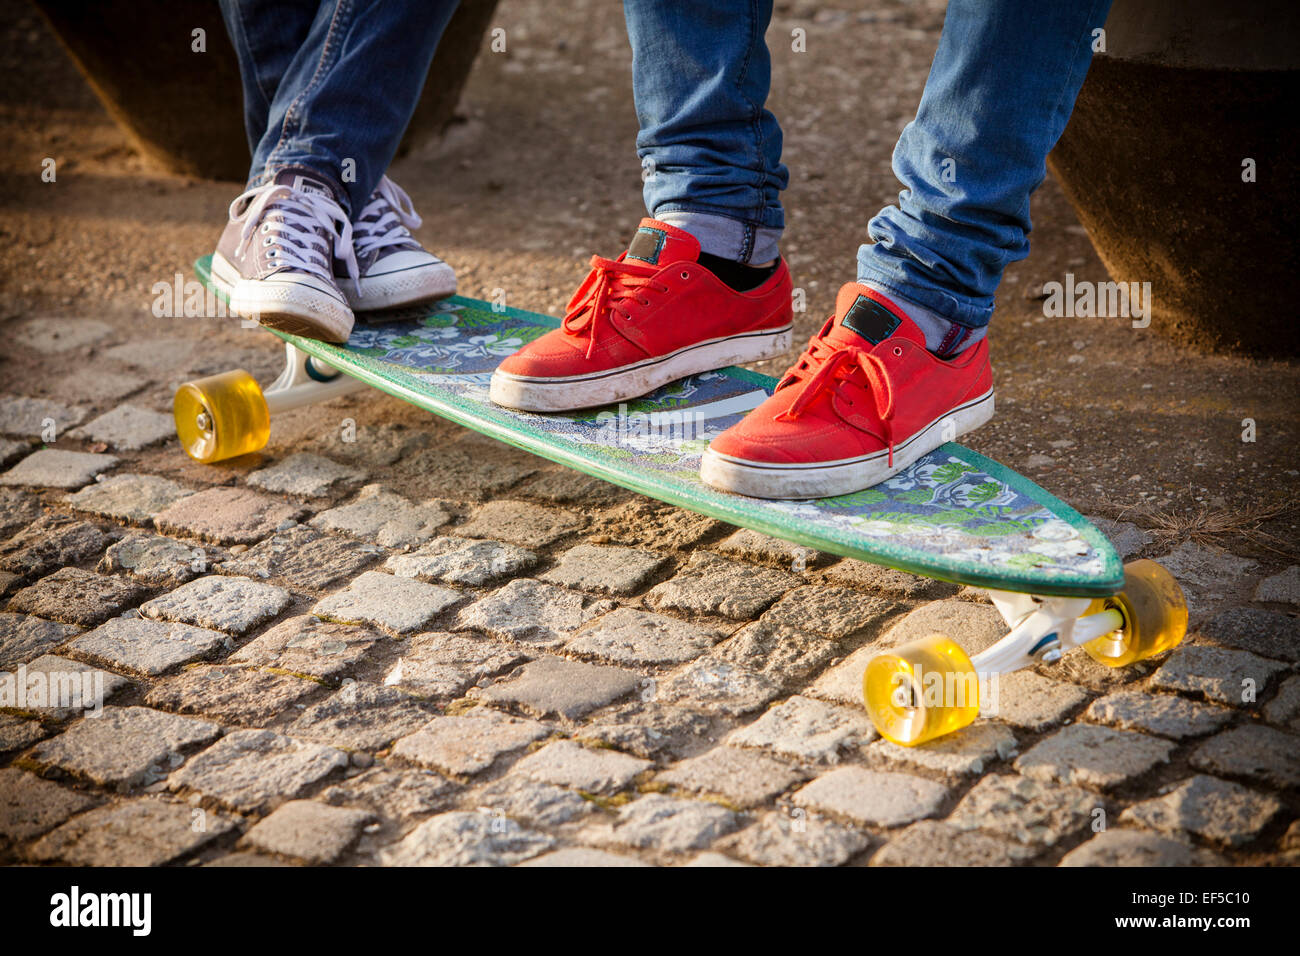 Sports shoes on skateboard - Stock Image